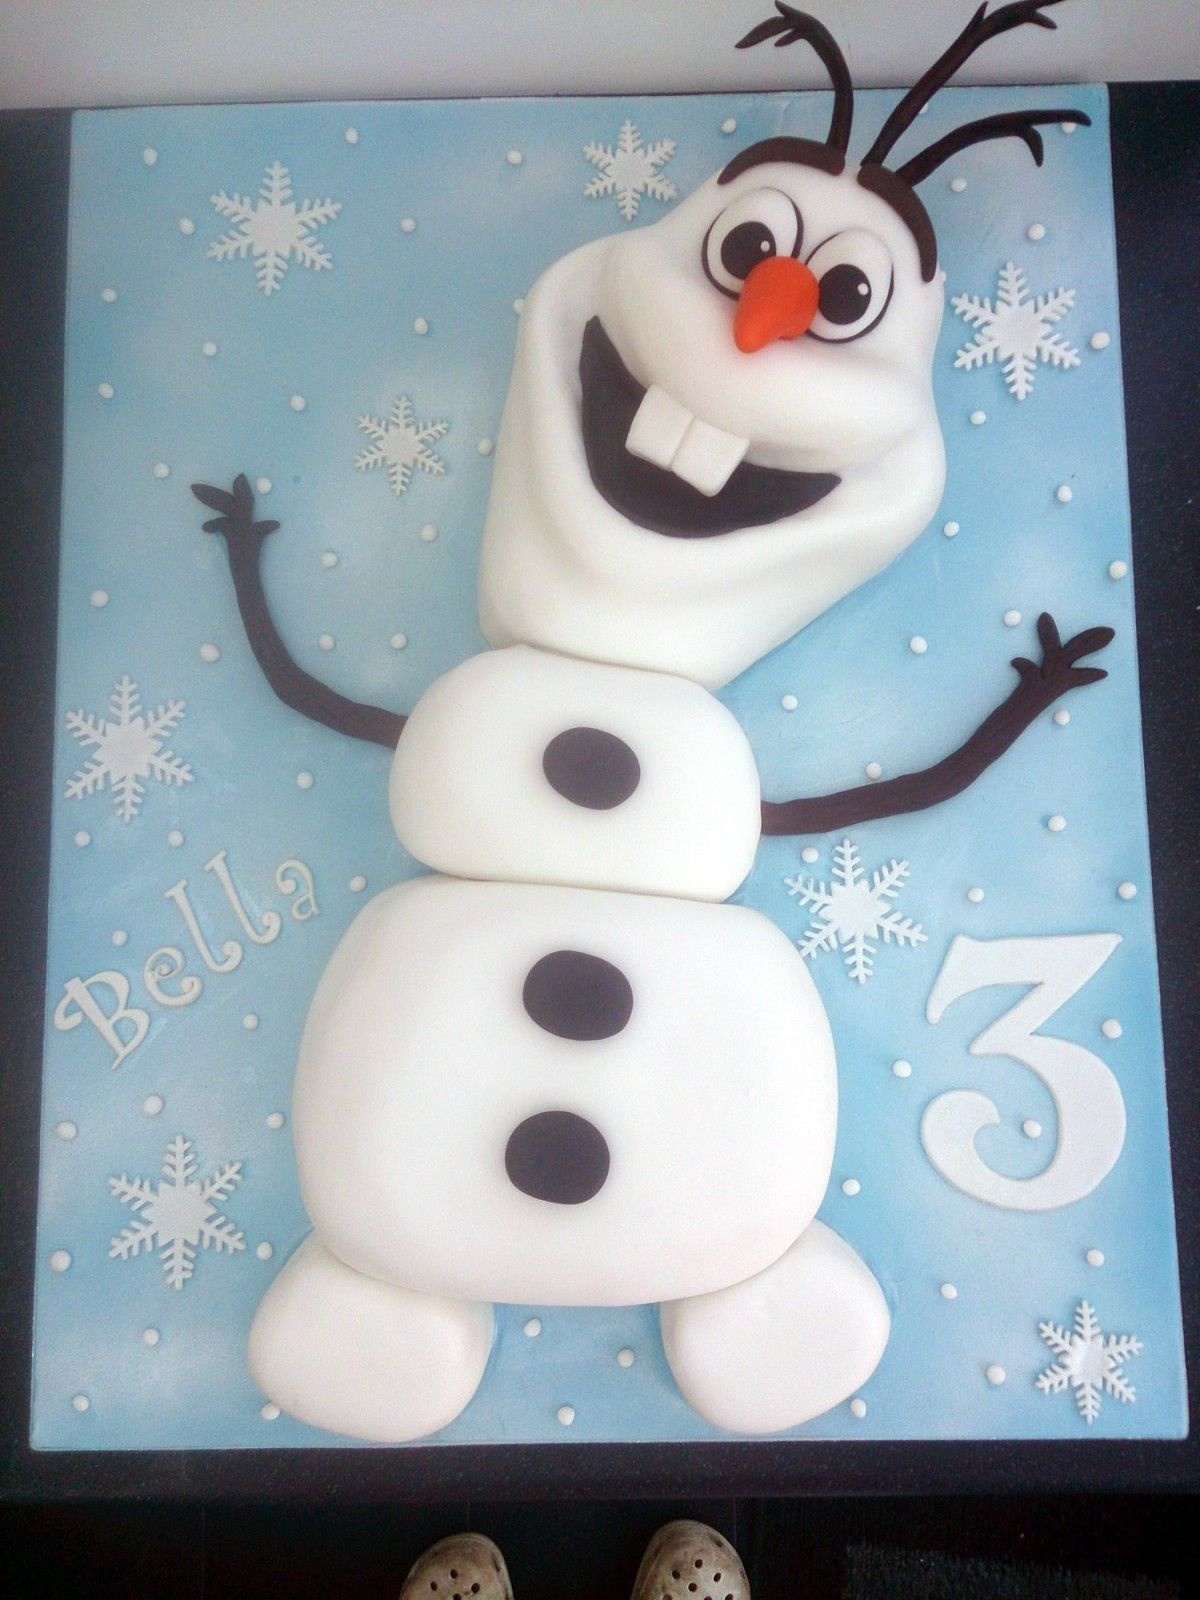 Surprising Olaf Cake Frozen Olaf Novelty Birthday Cake Olaf Birthday Cake Funny Birthday Cards Online Alyptdamsfinfo